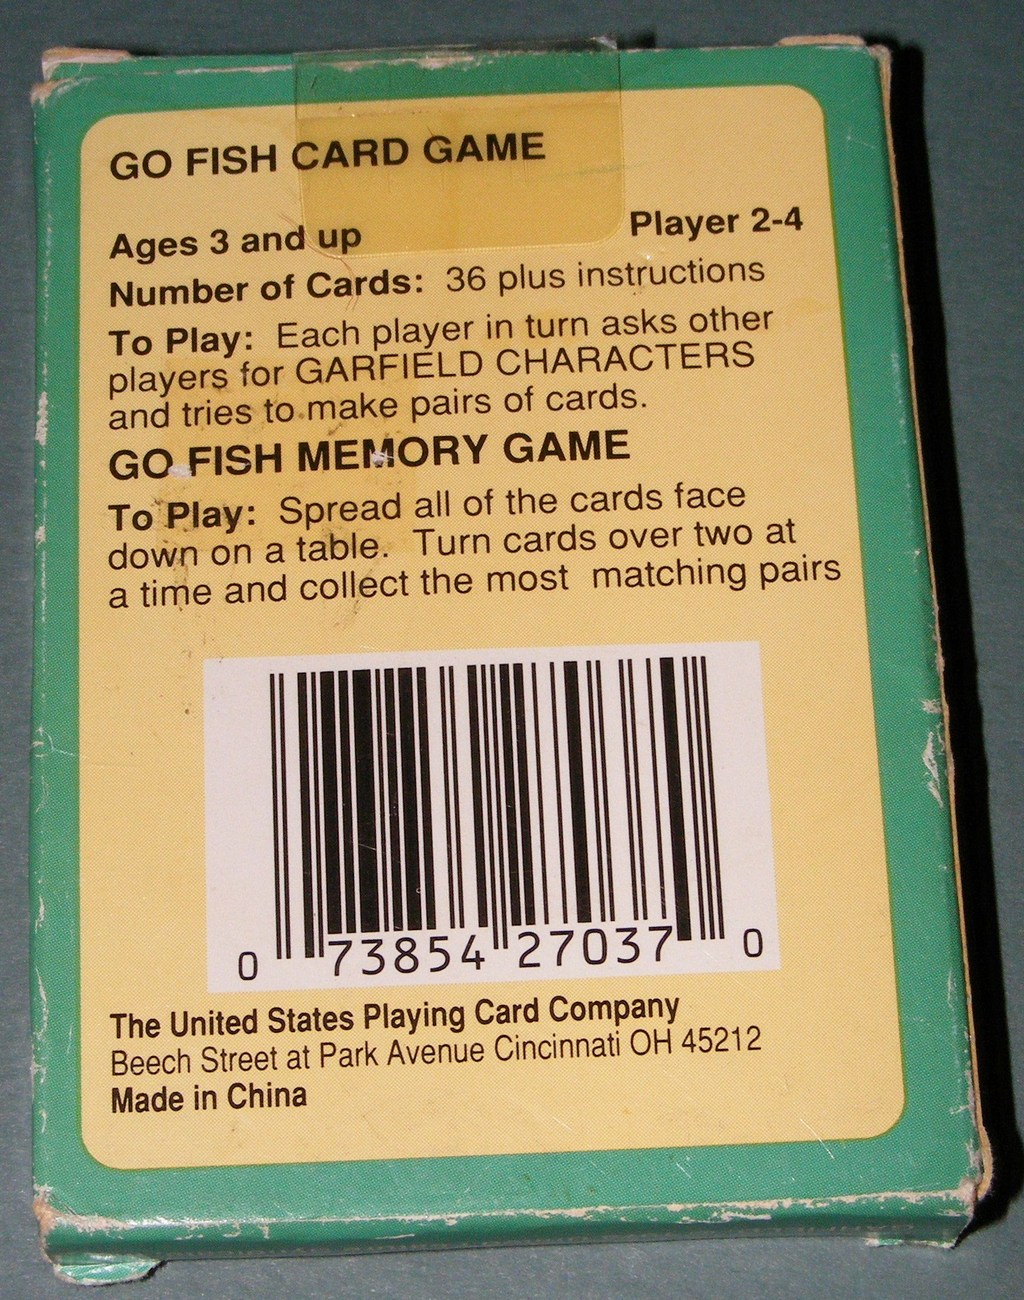 1978 garfield go fish card game other card games poker for Card game go fish